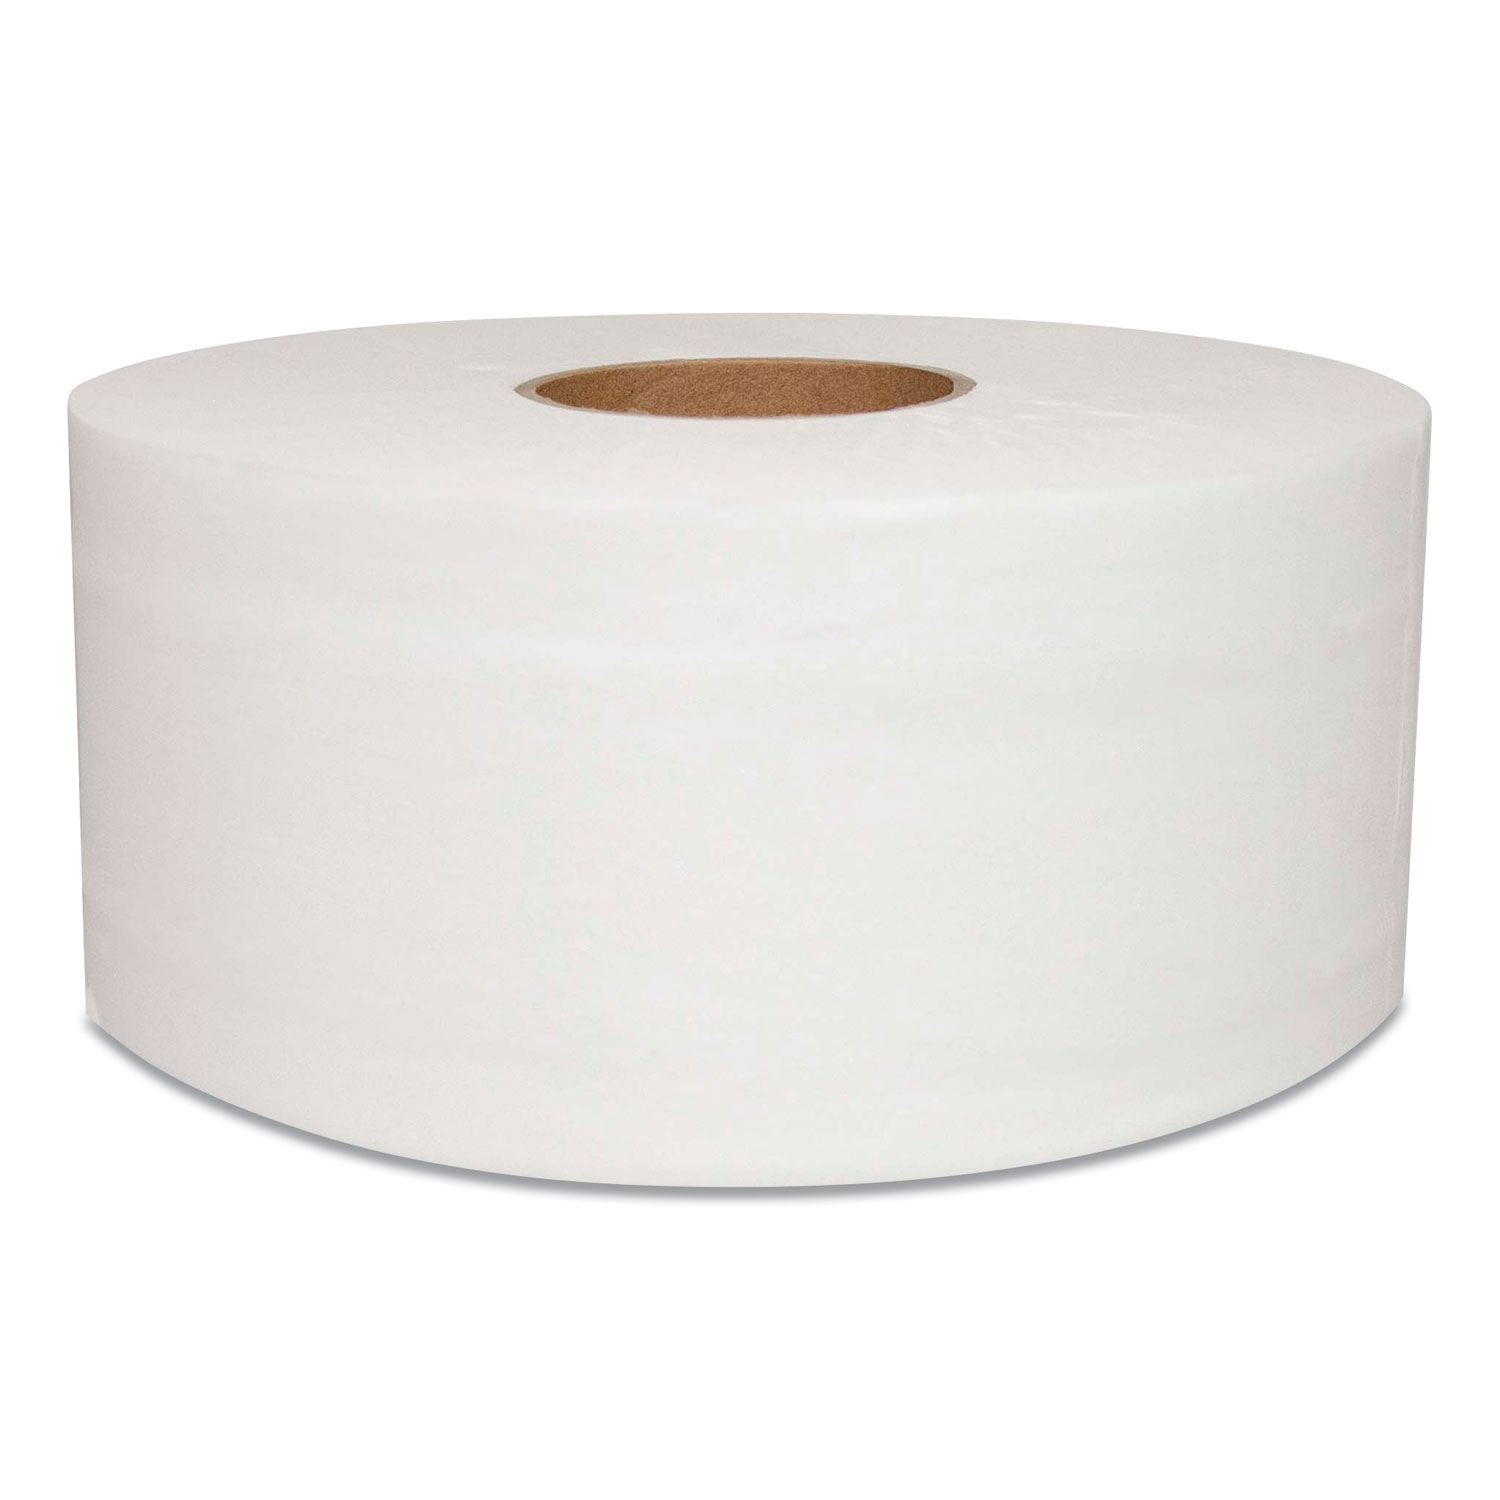 Morsoft Millennium Jumbo Bath Tissue, Septic Safe, 2-Ply, White, 750 ft, 12 Rolls/Carton